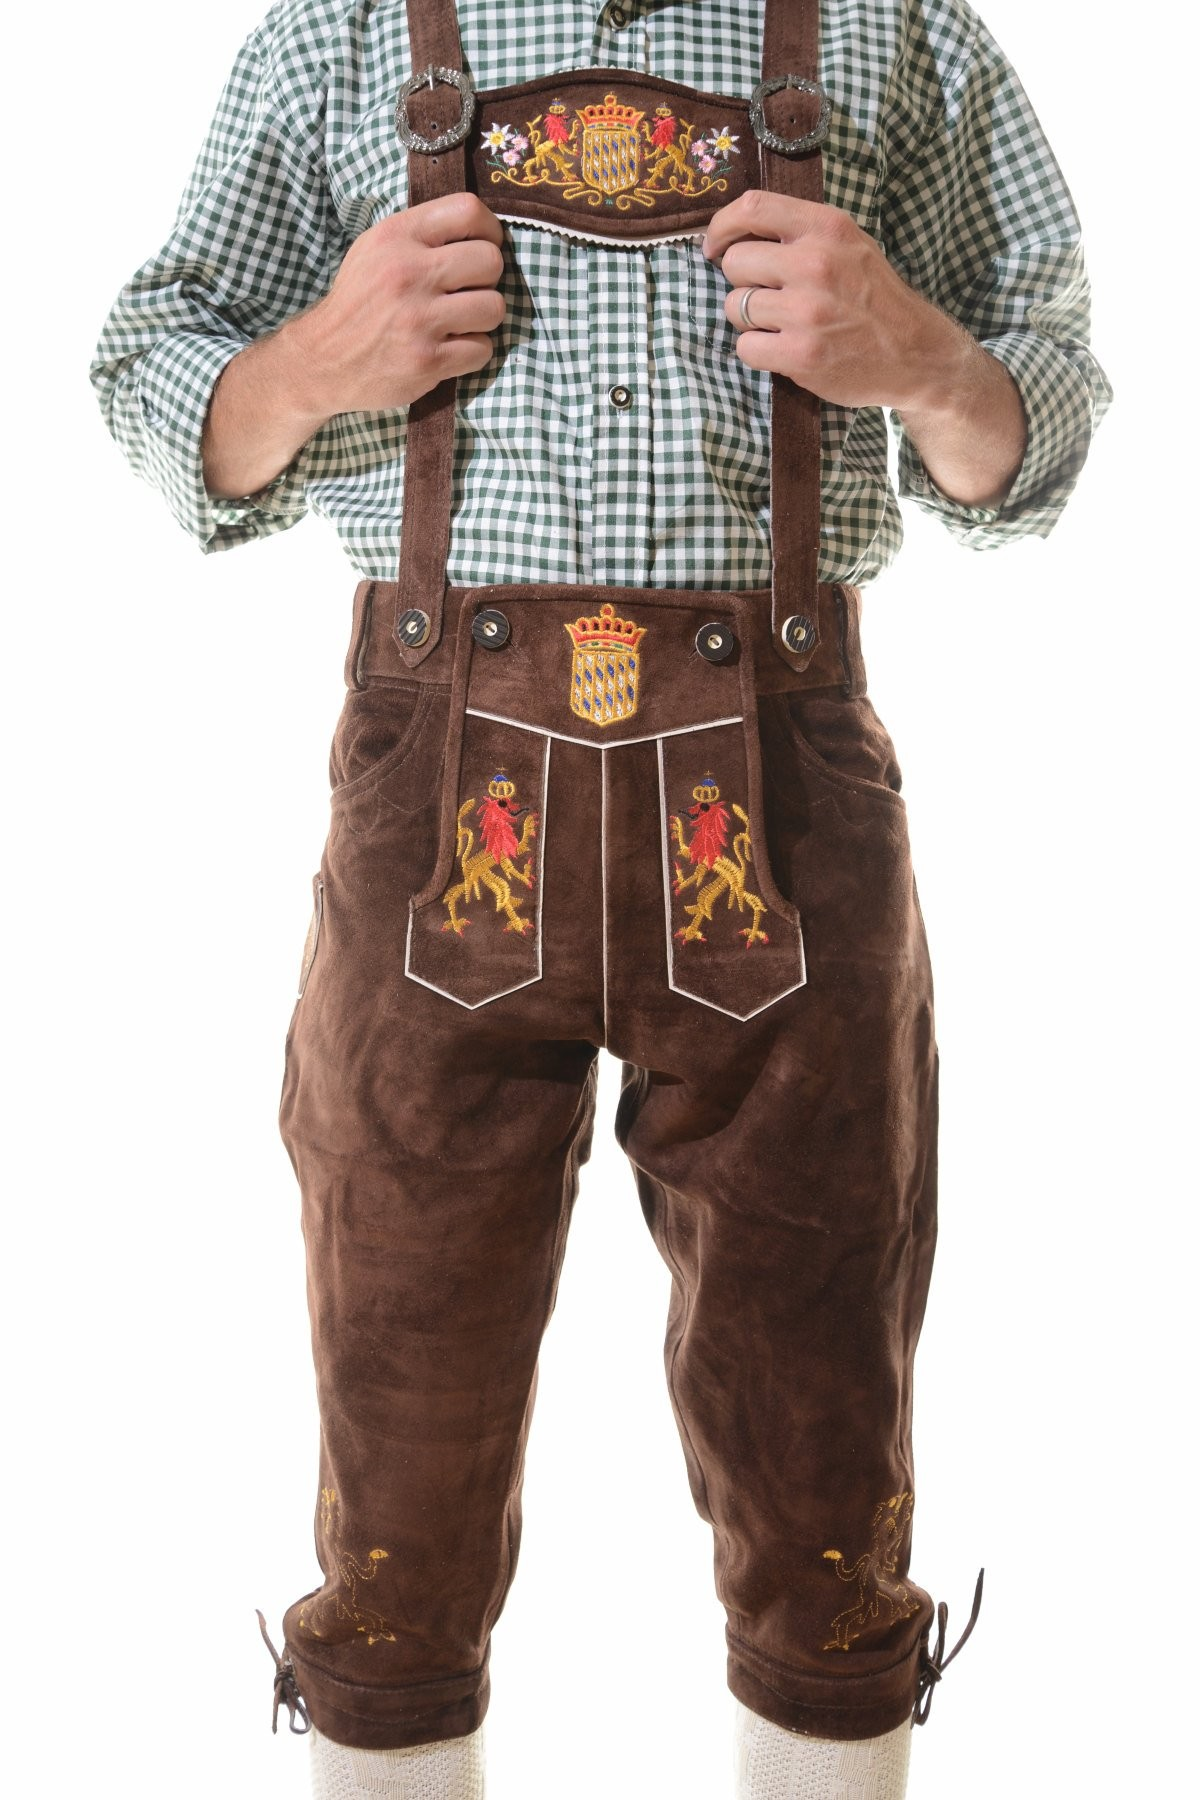 Lederhosen german lederhosen lederhosen costume german costumes bayern lederhosen solutioingenieria Image collections